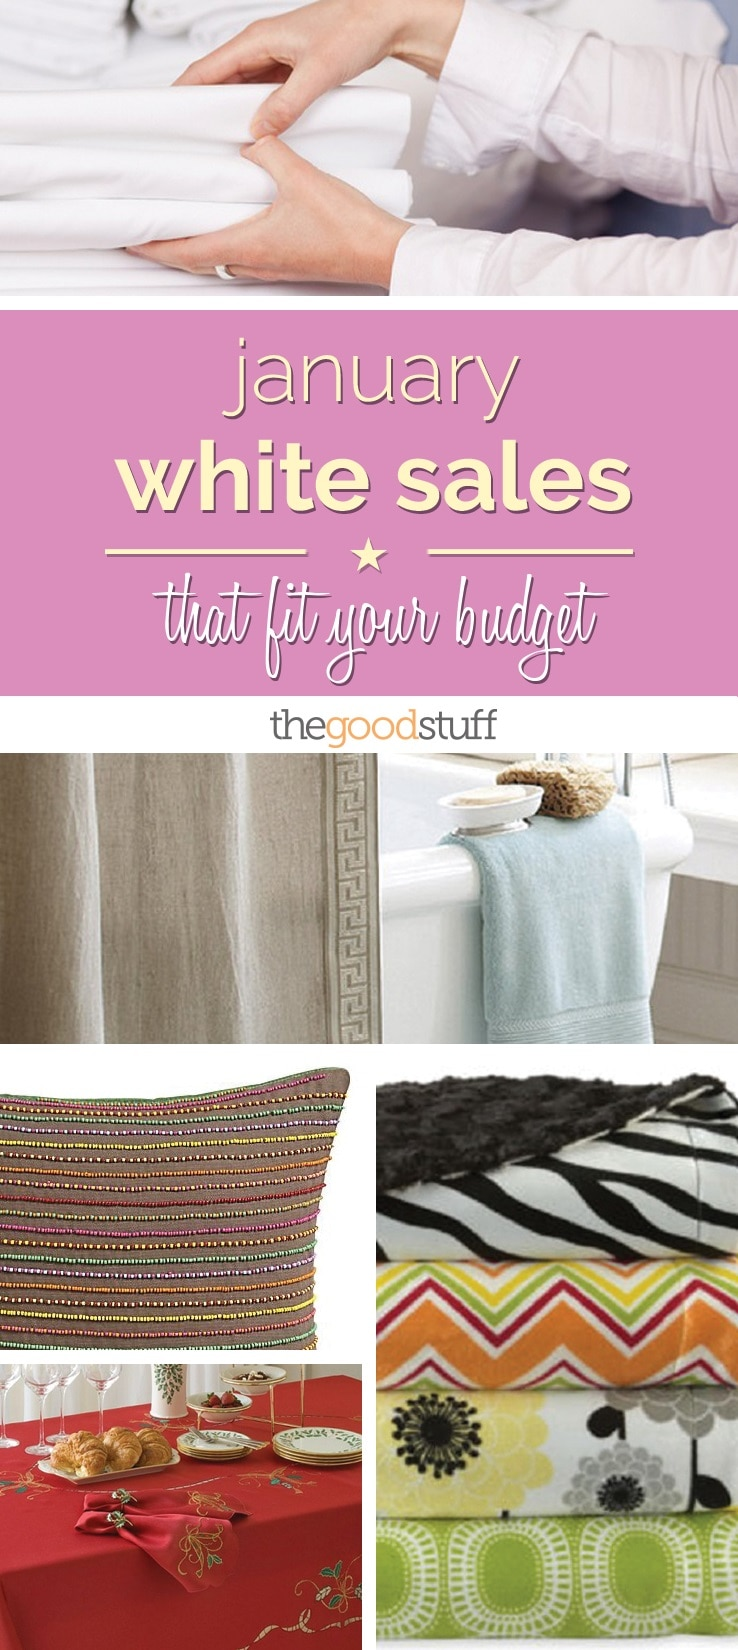 life-january-white-sales